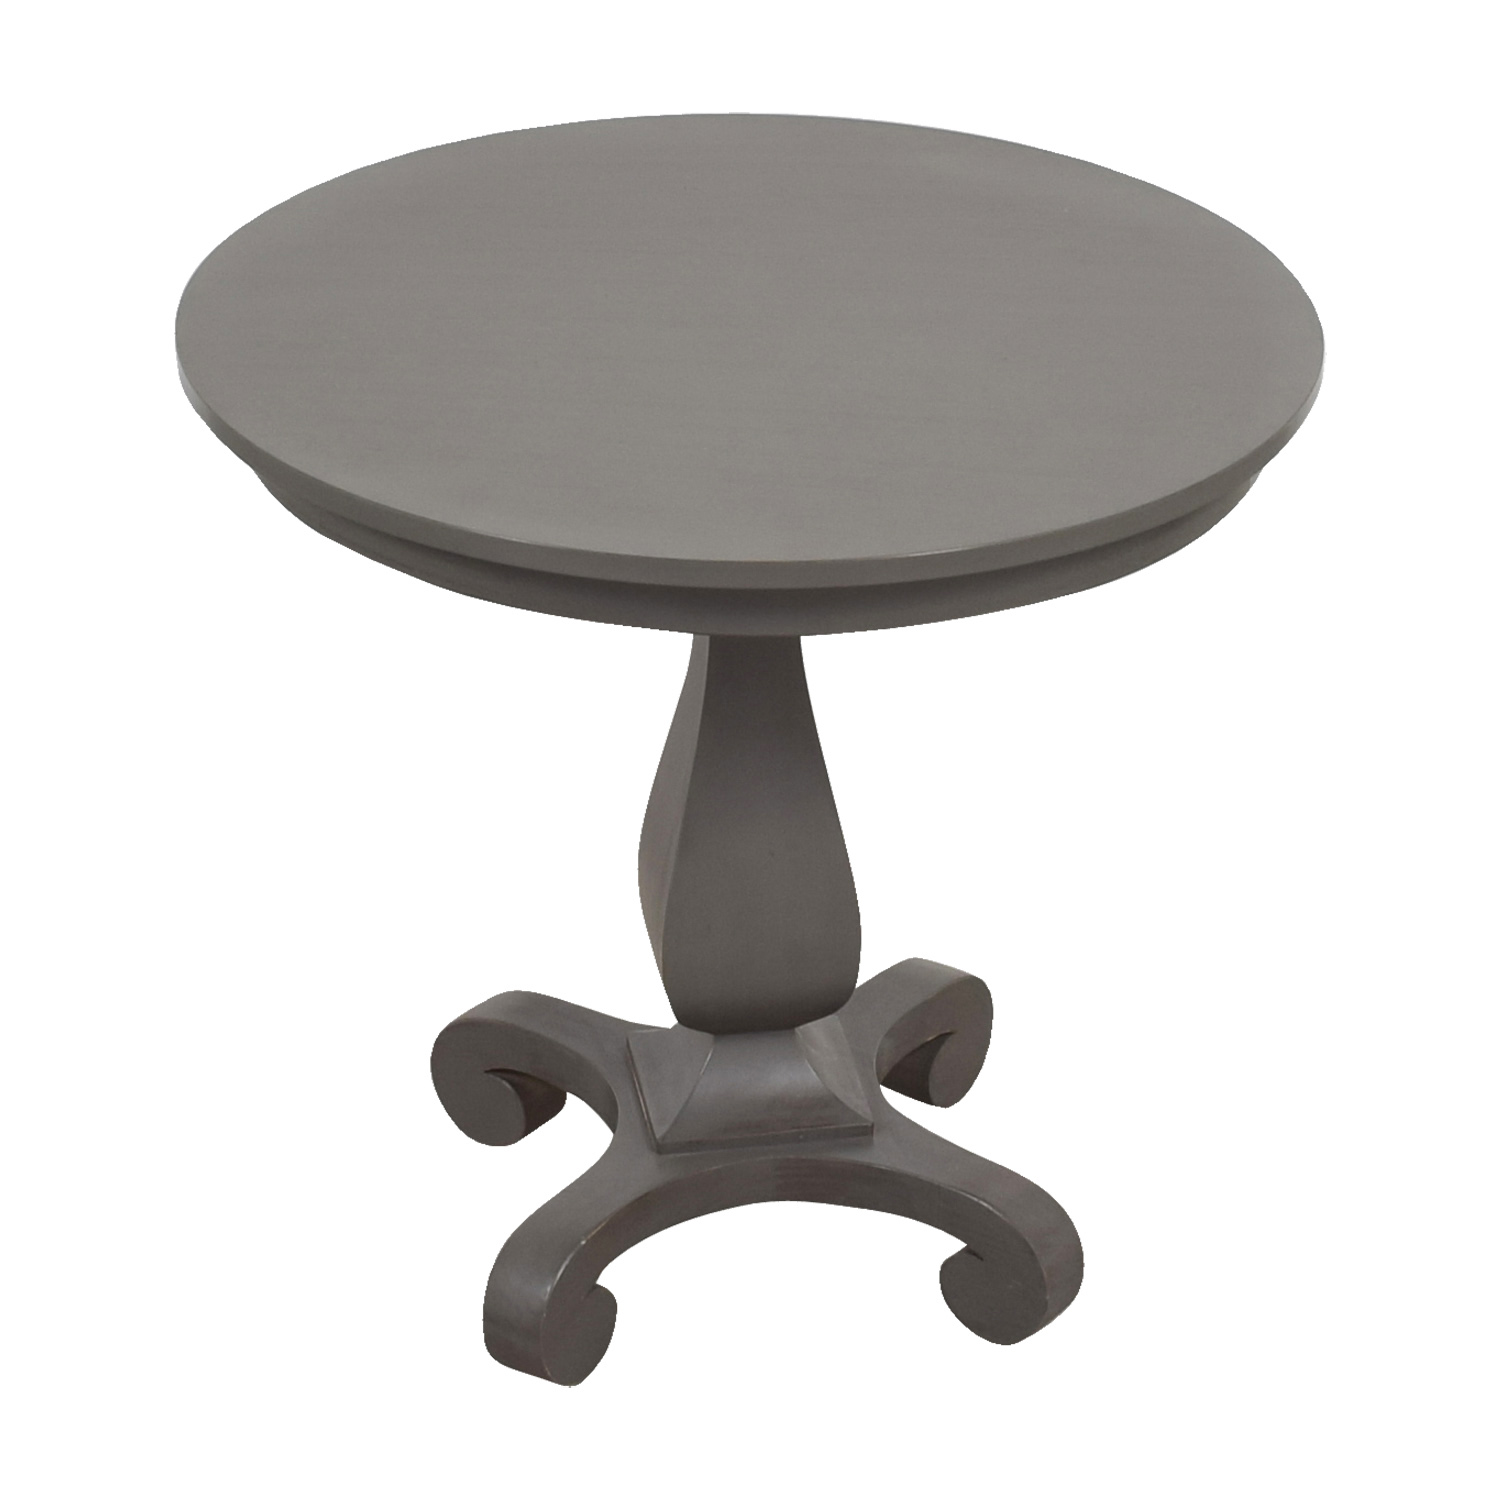 Crate & Barrel Crate & Barrel Round Grey Dining Table for sale